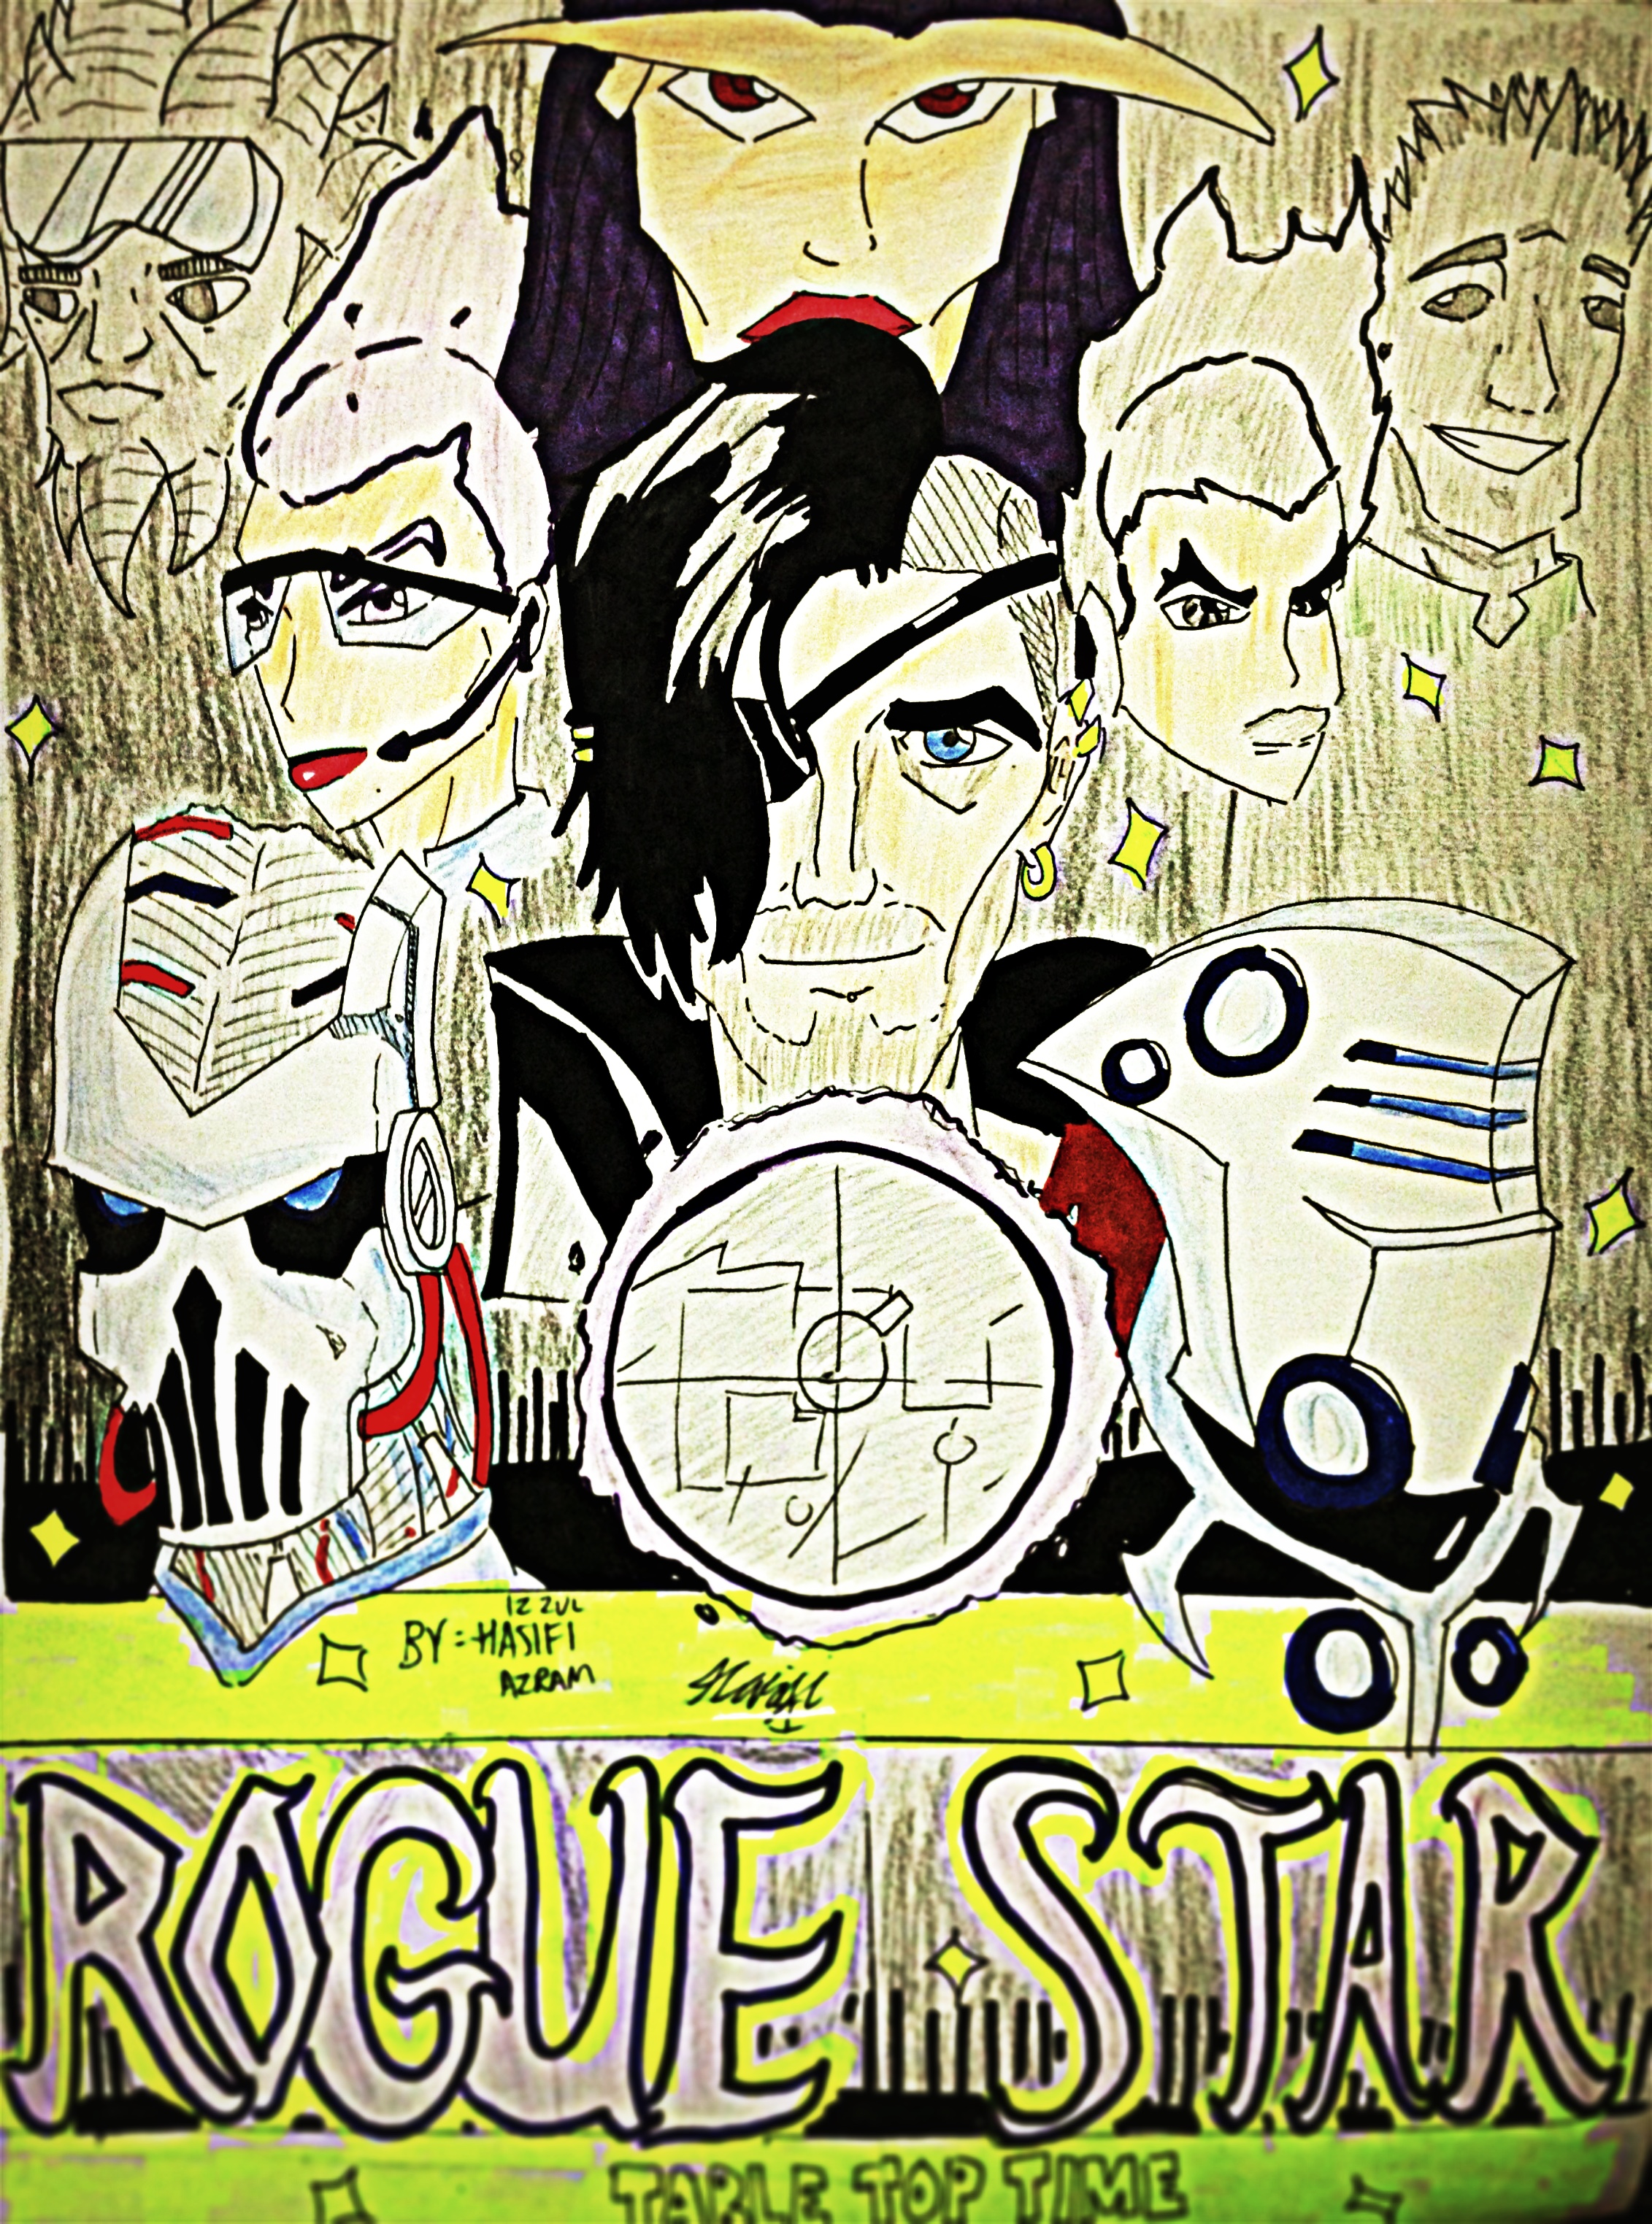 Rogue Star Space Opera Poster